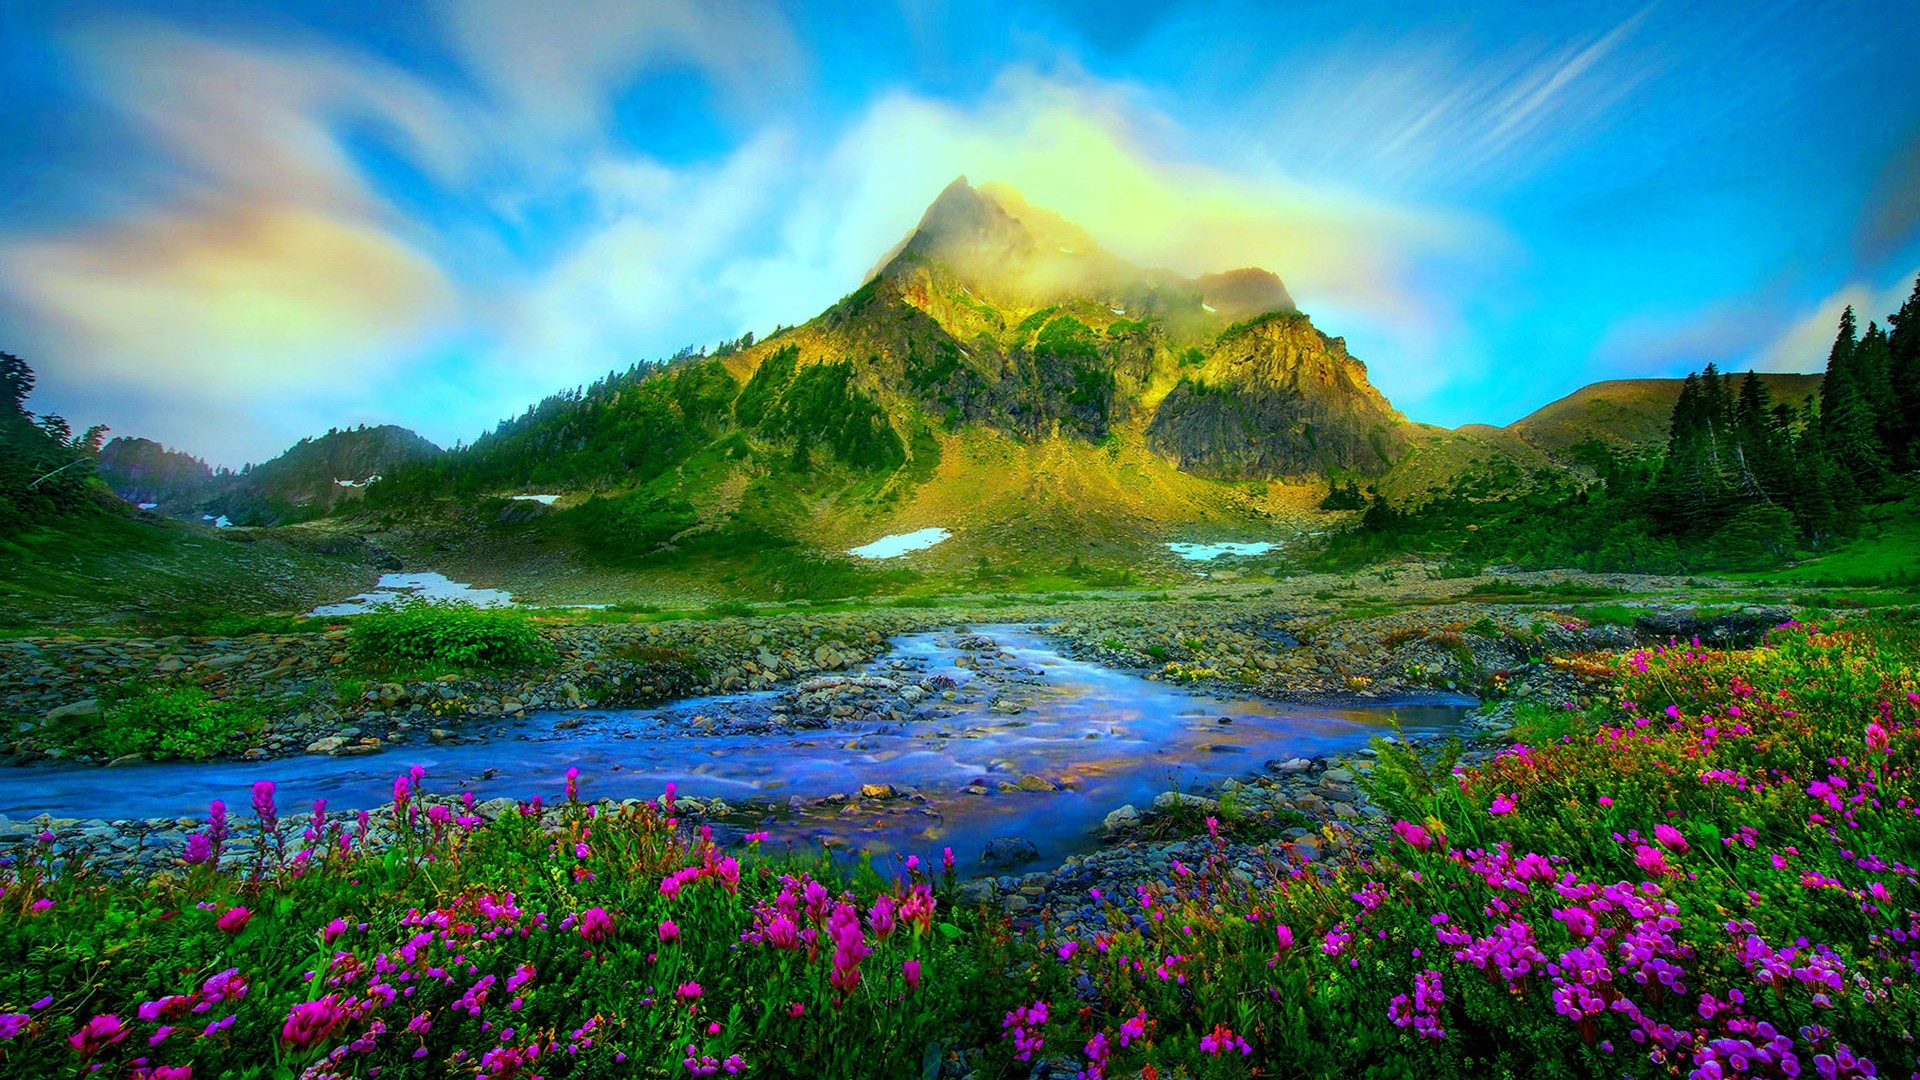 Nature Landscape Wallpapers Hd Widescreen Wallpaper Nature 1920x1080